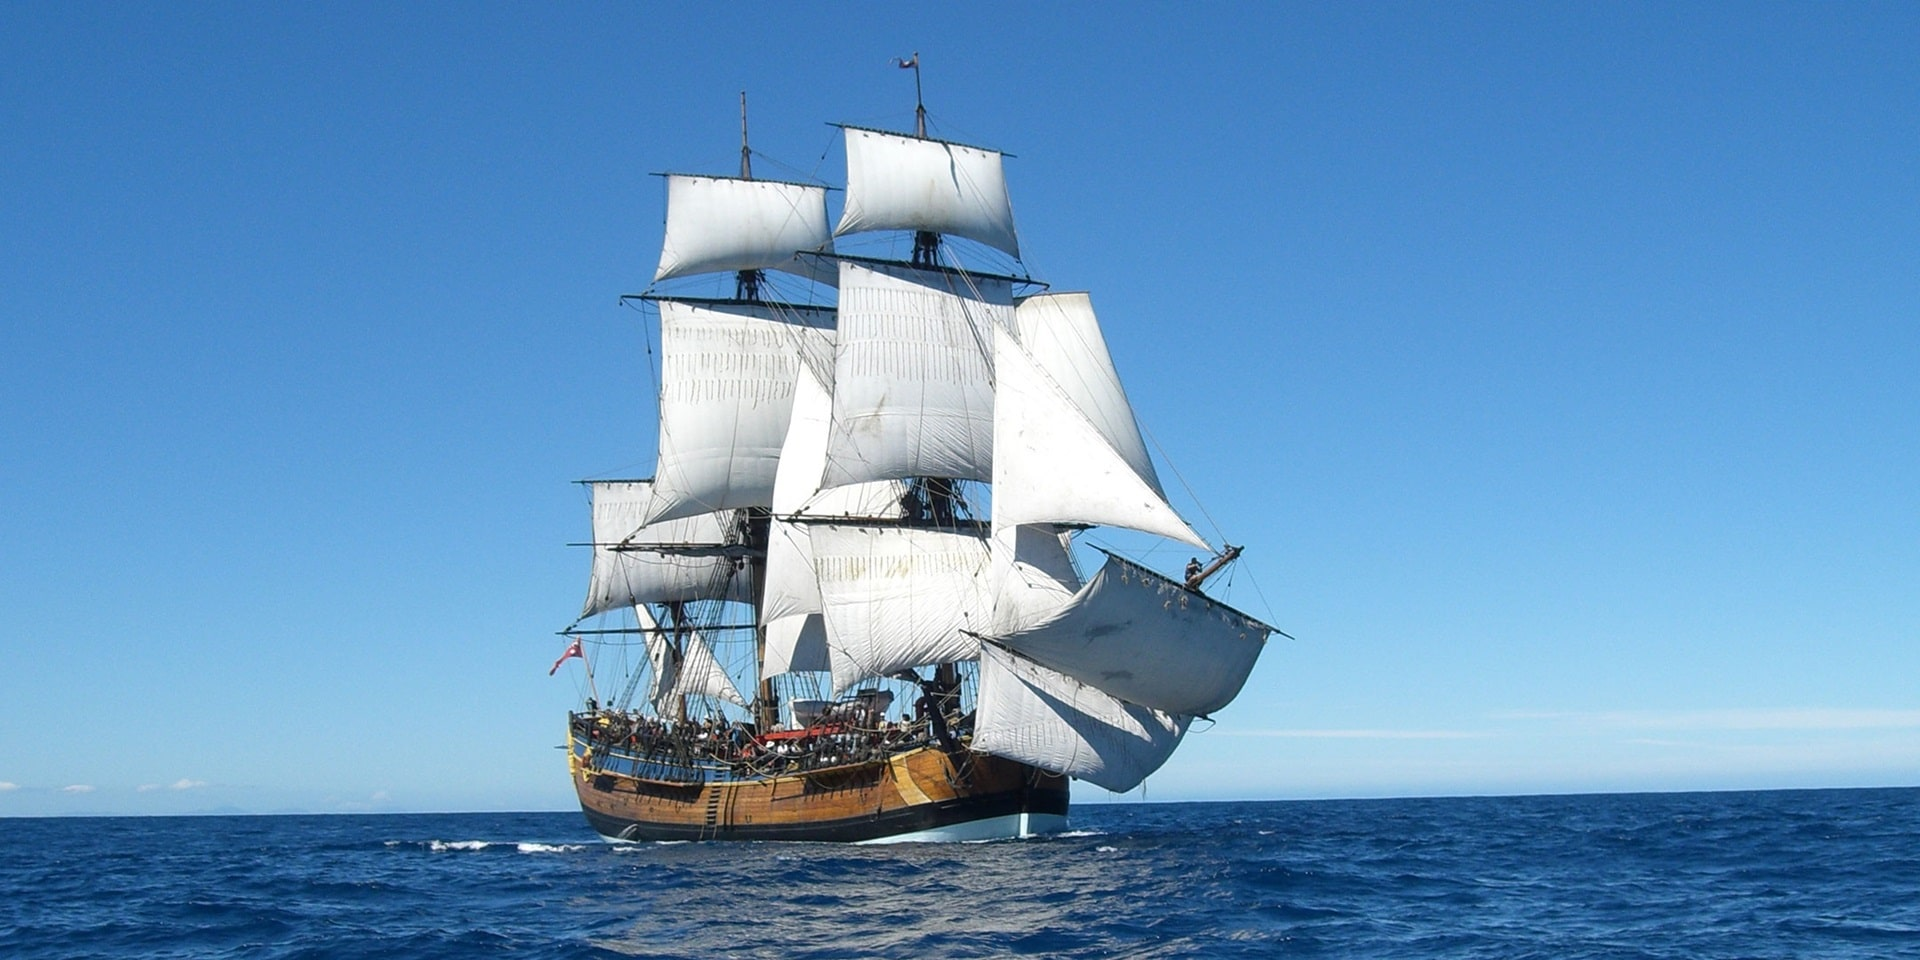 The replica of the HMB Endeavour, the research vessel that James Cook commanded on his first voyage of discovery (1768 to 1771)